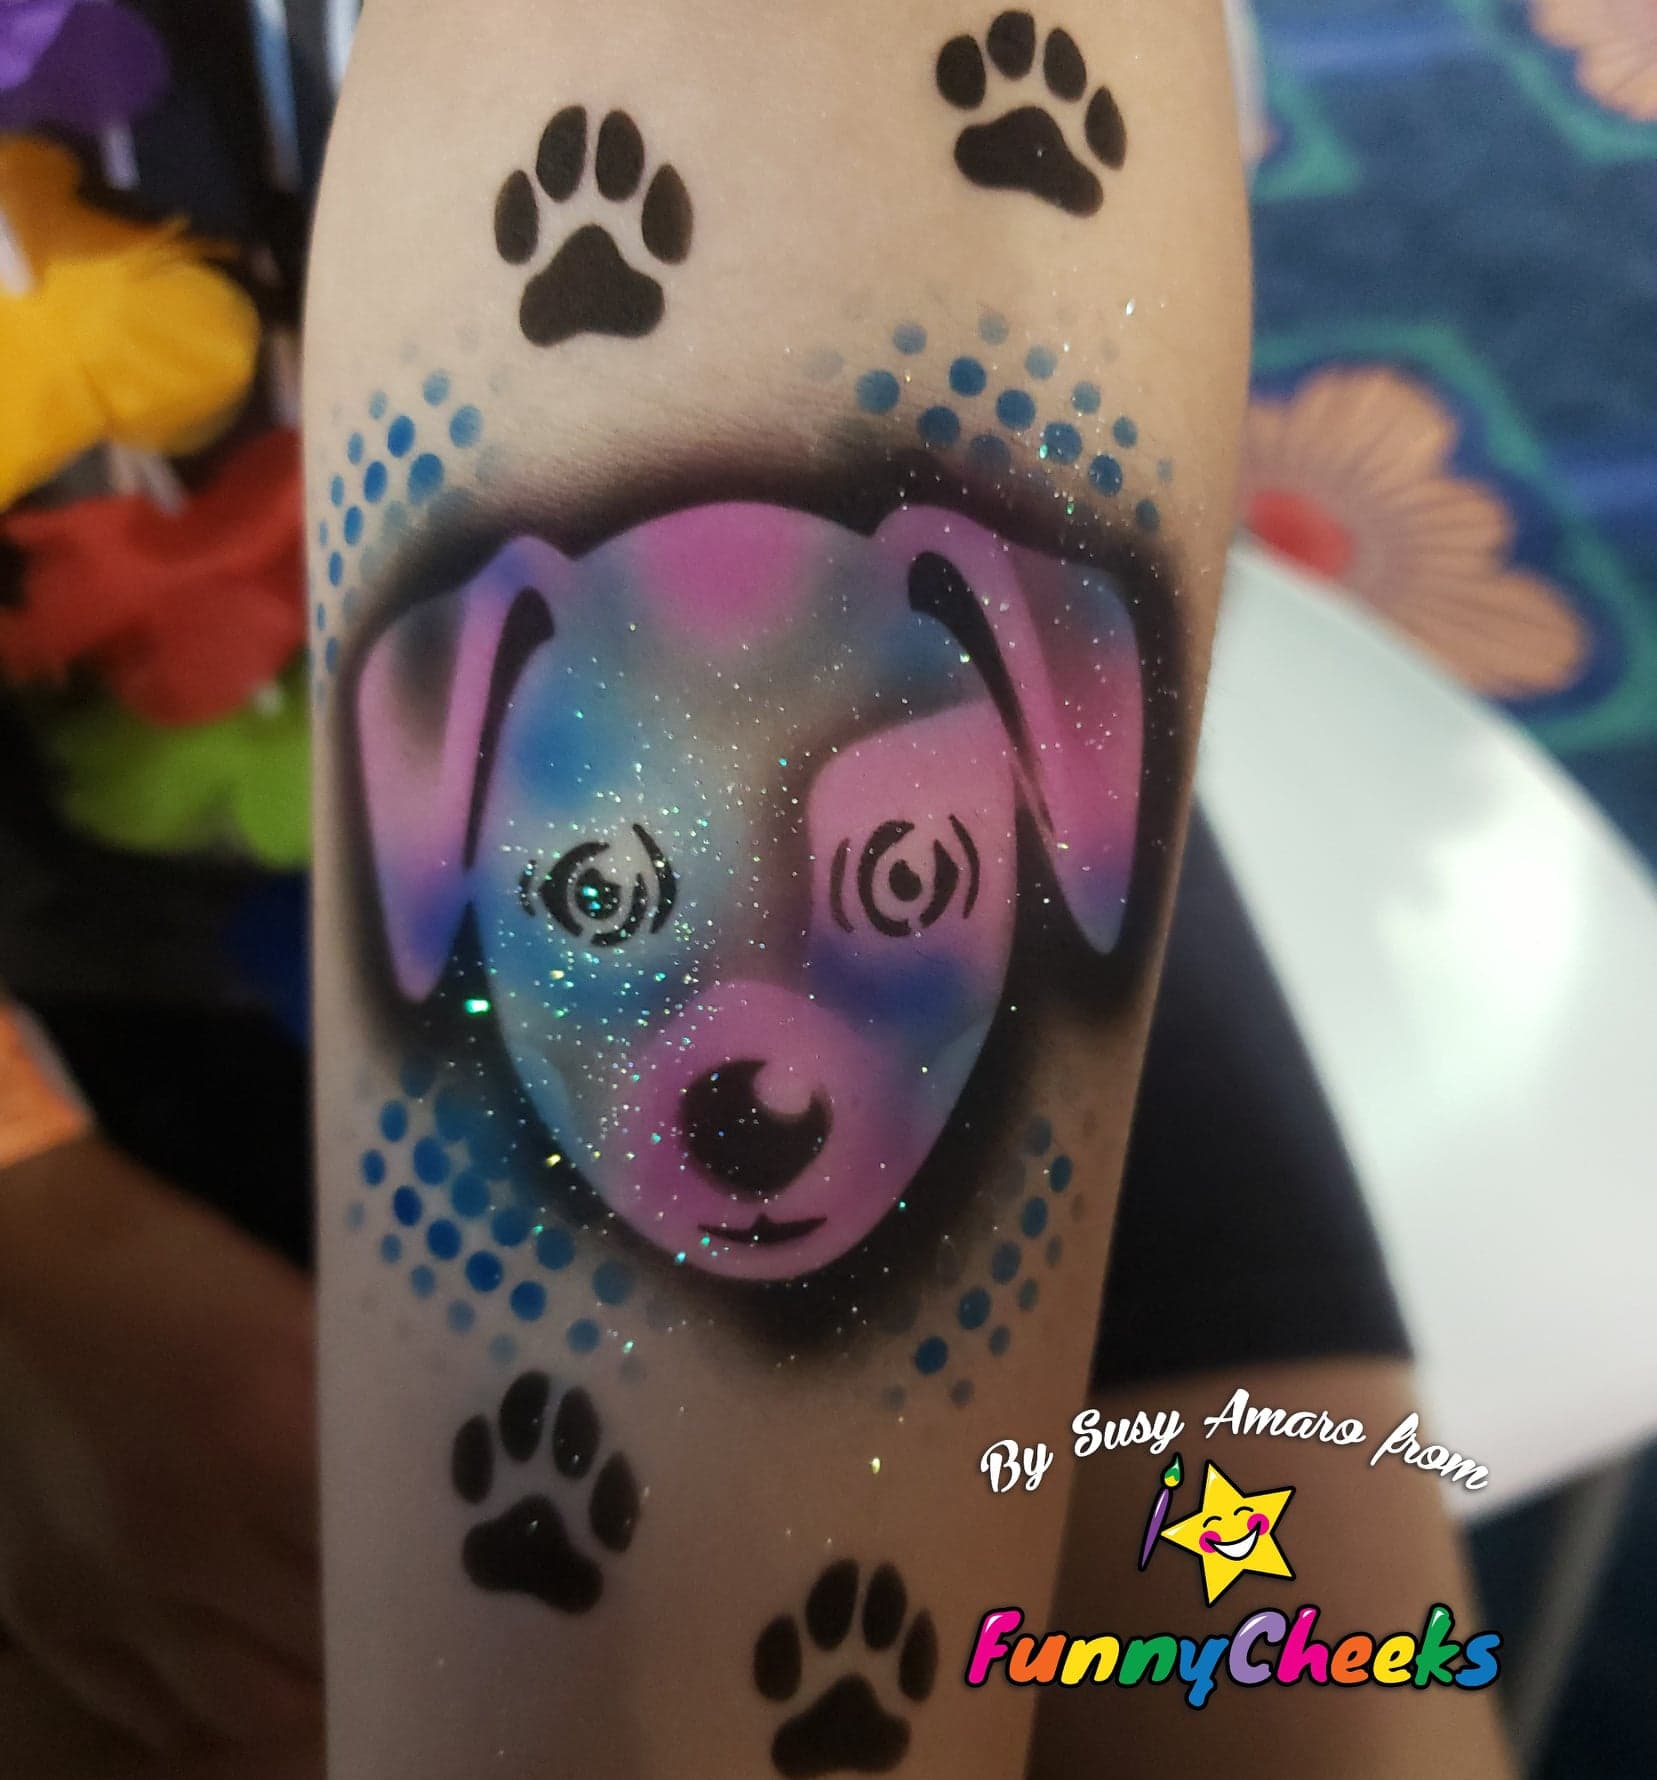 Dog airbrush tattoo